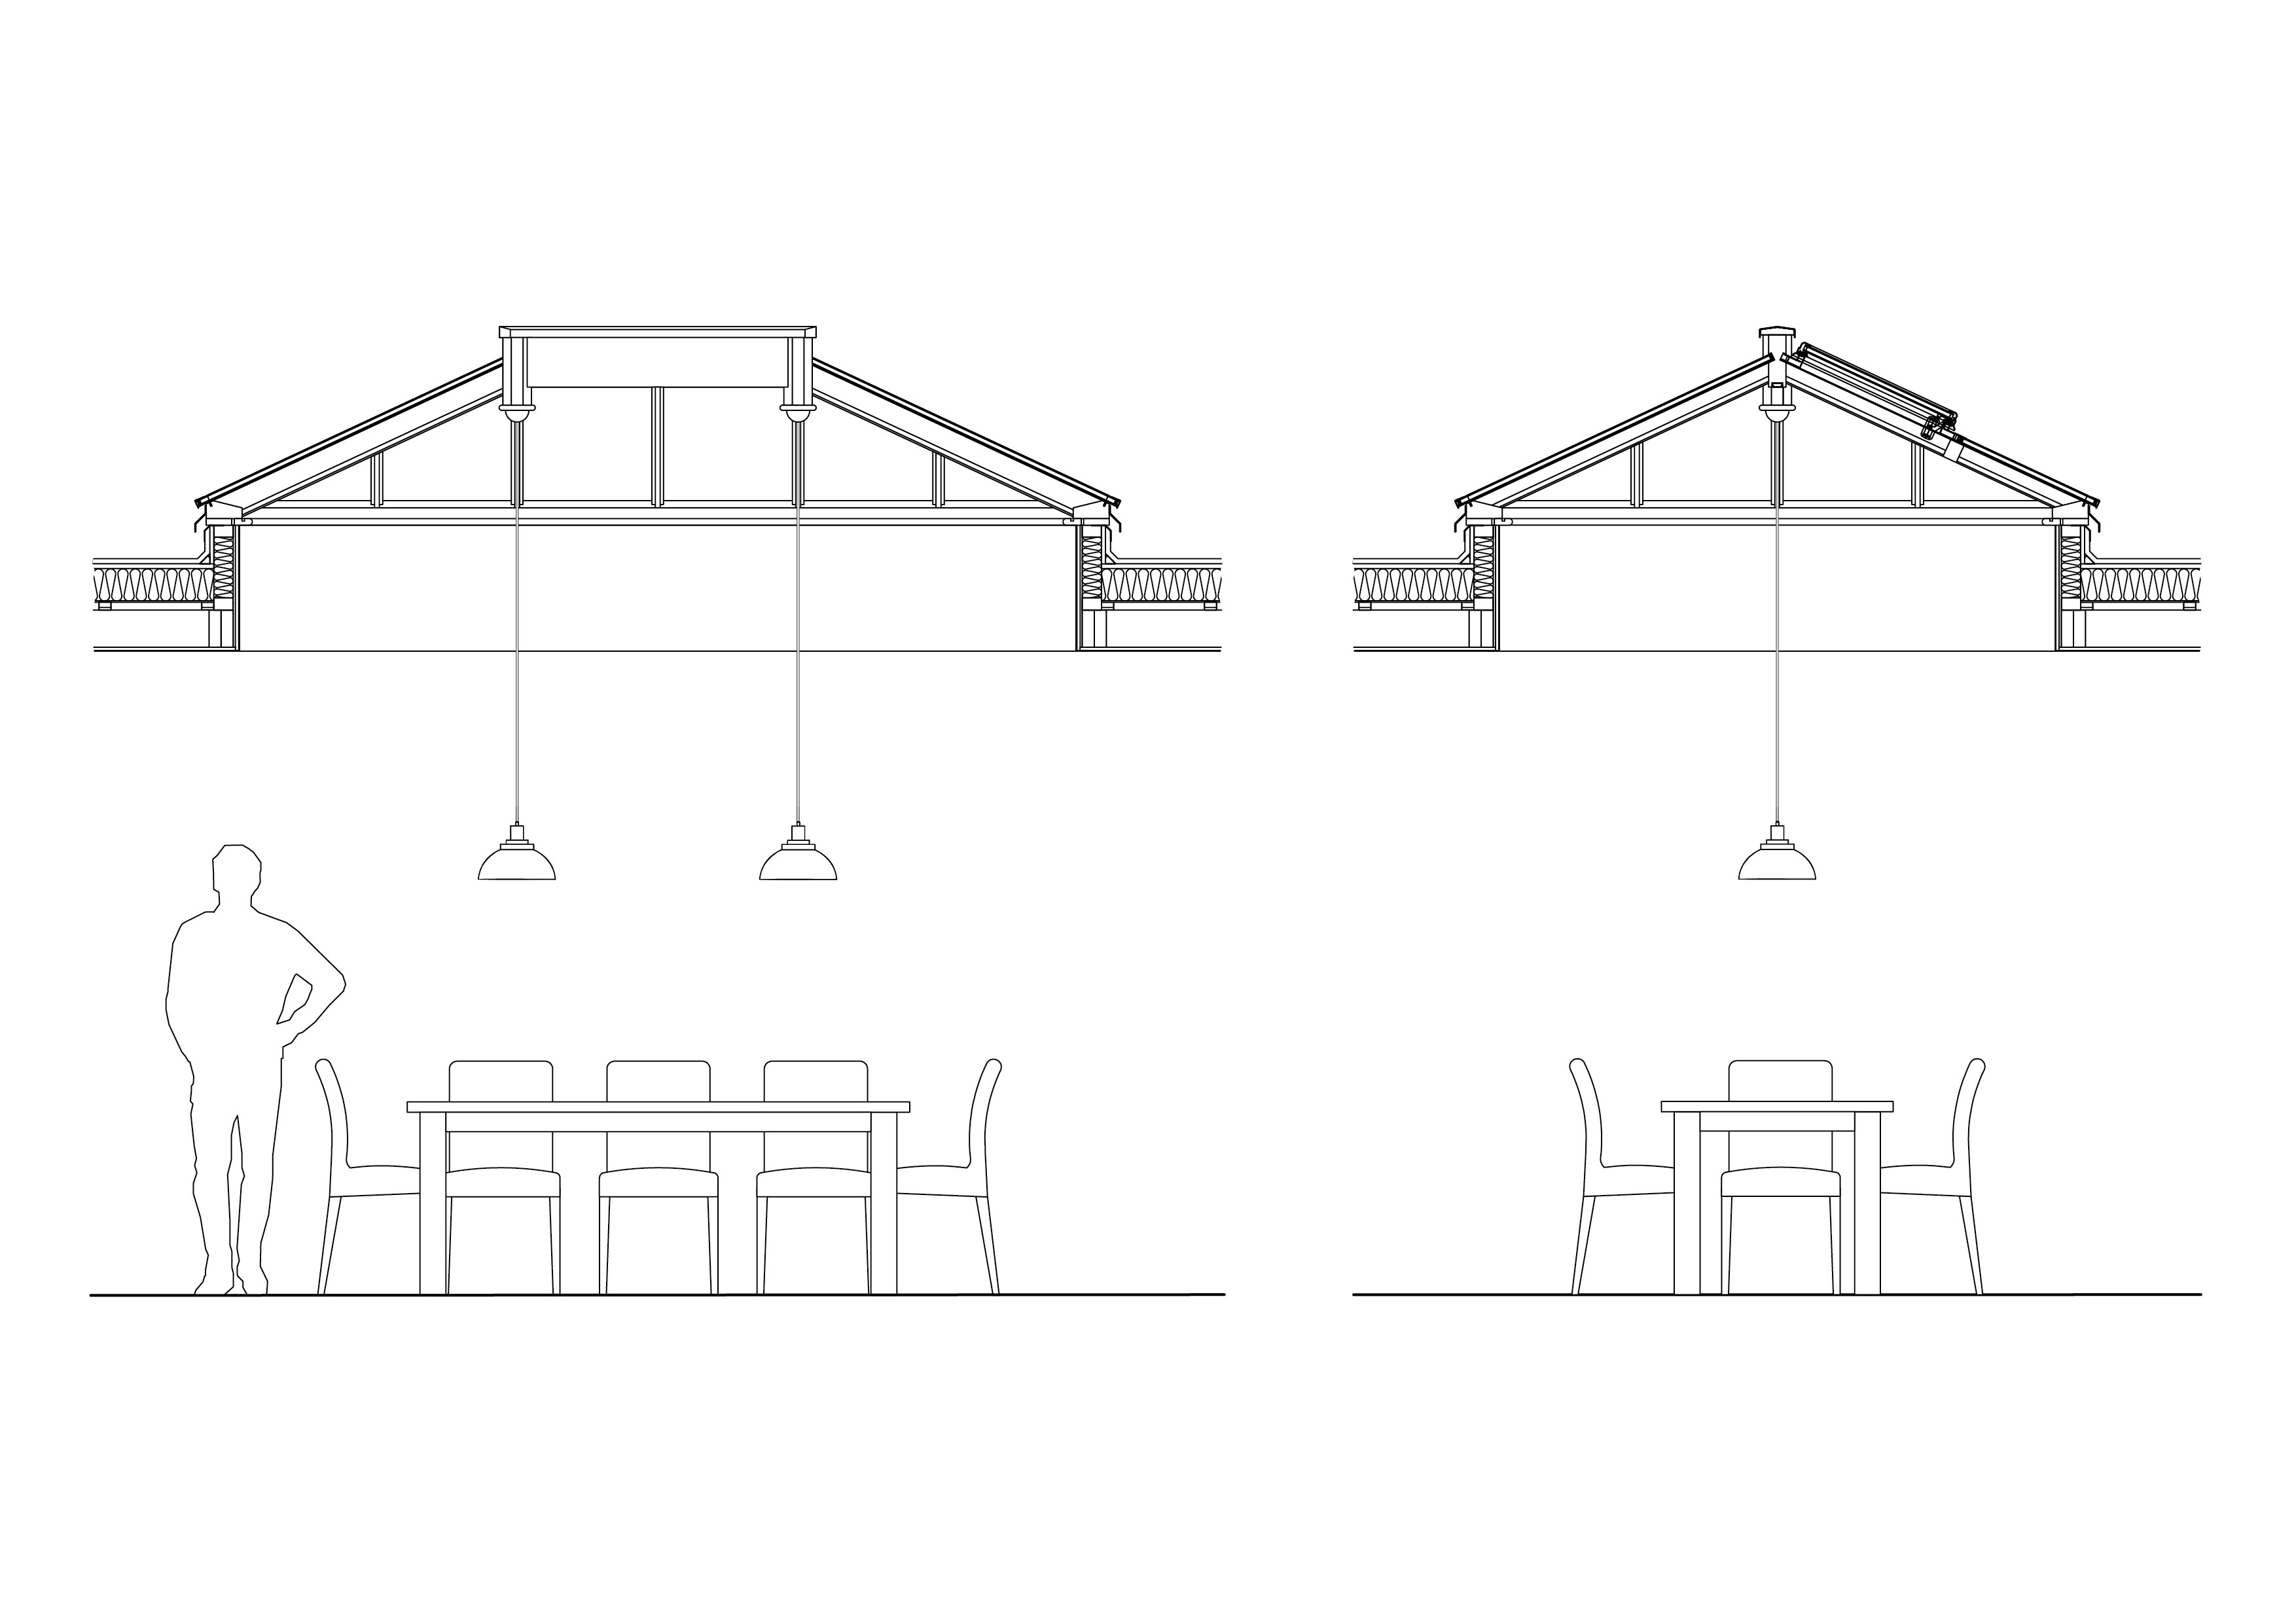 Section drawings showing pendant lights hanging from roof lantern